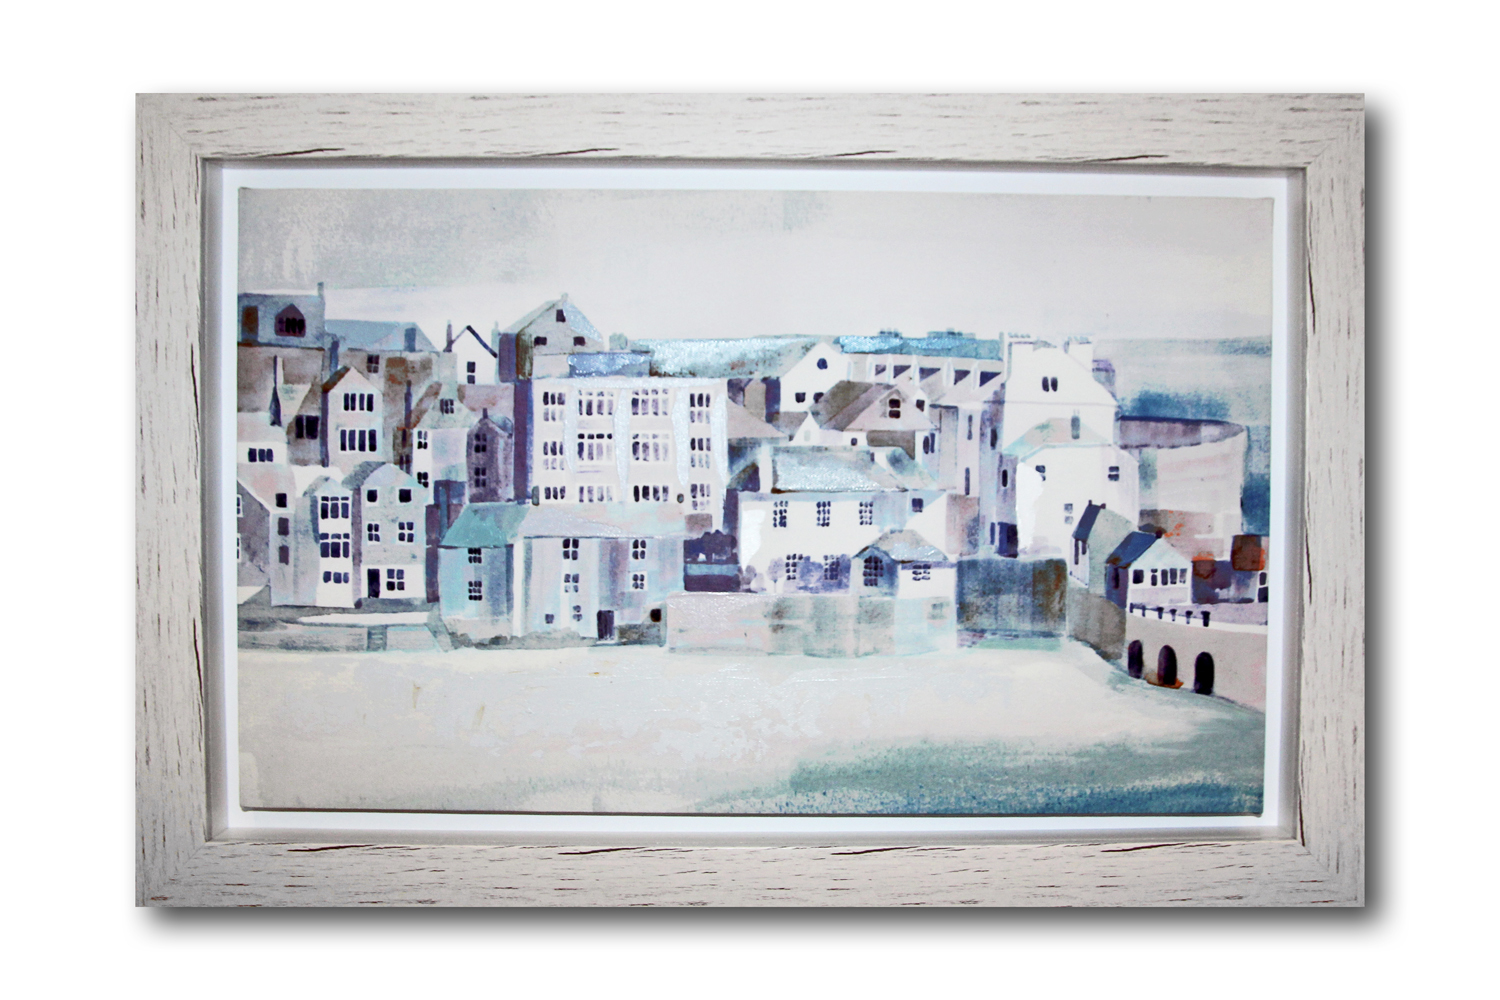 168 Items Mixed Lot - Brand New Interior Décor WallArt/Canvases, Approximate RRP £1181.32 - Image 3 of 3